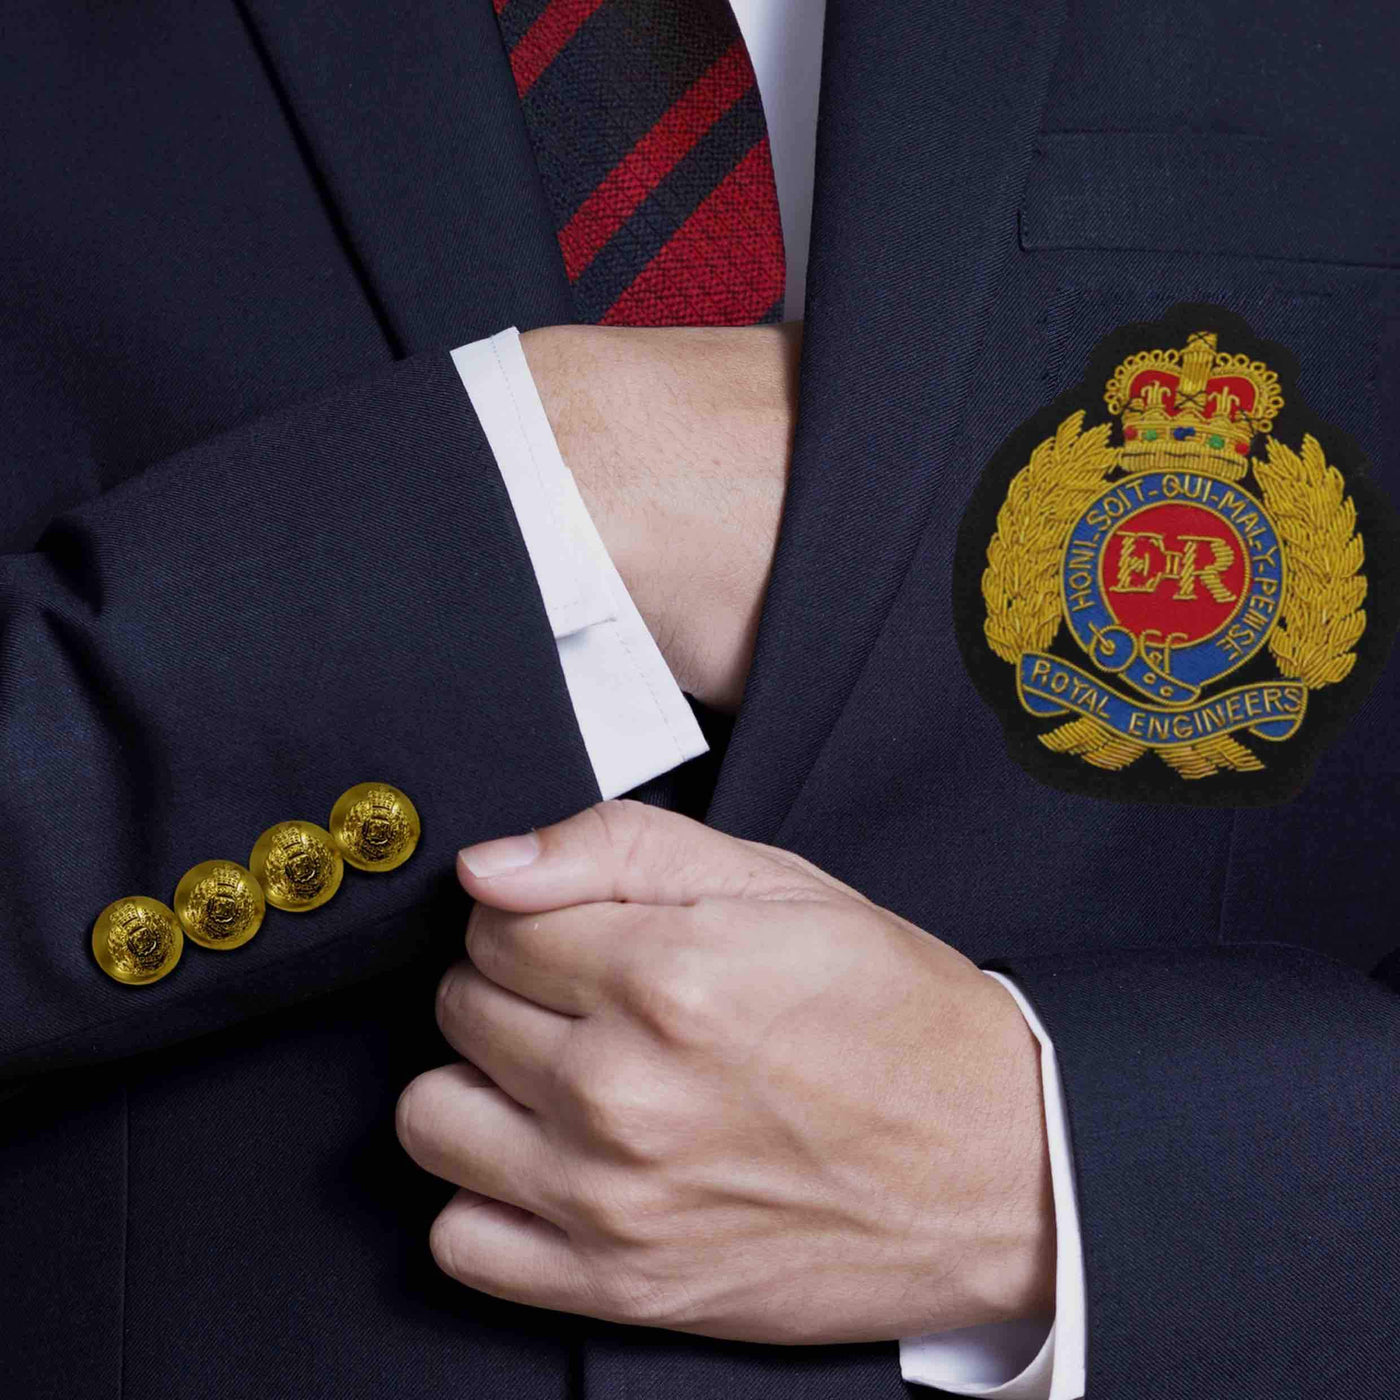 Blazer Badges, Regiment Blazer Buttons, Military Berets, Regimental Beret Badges, Regiment Hackles, Regimental Umbrellas